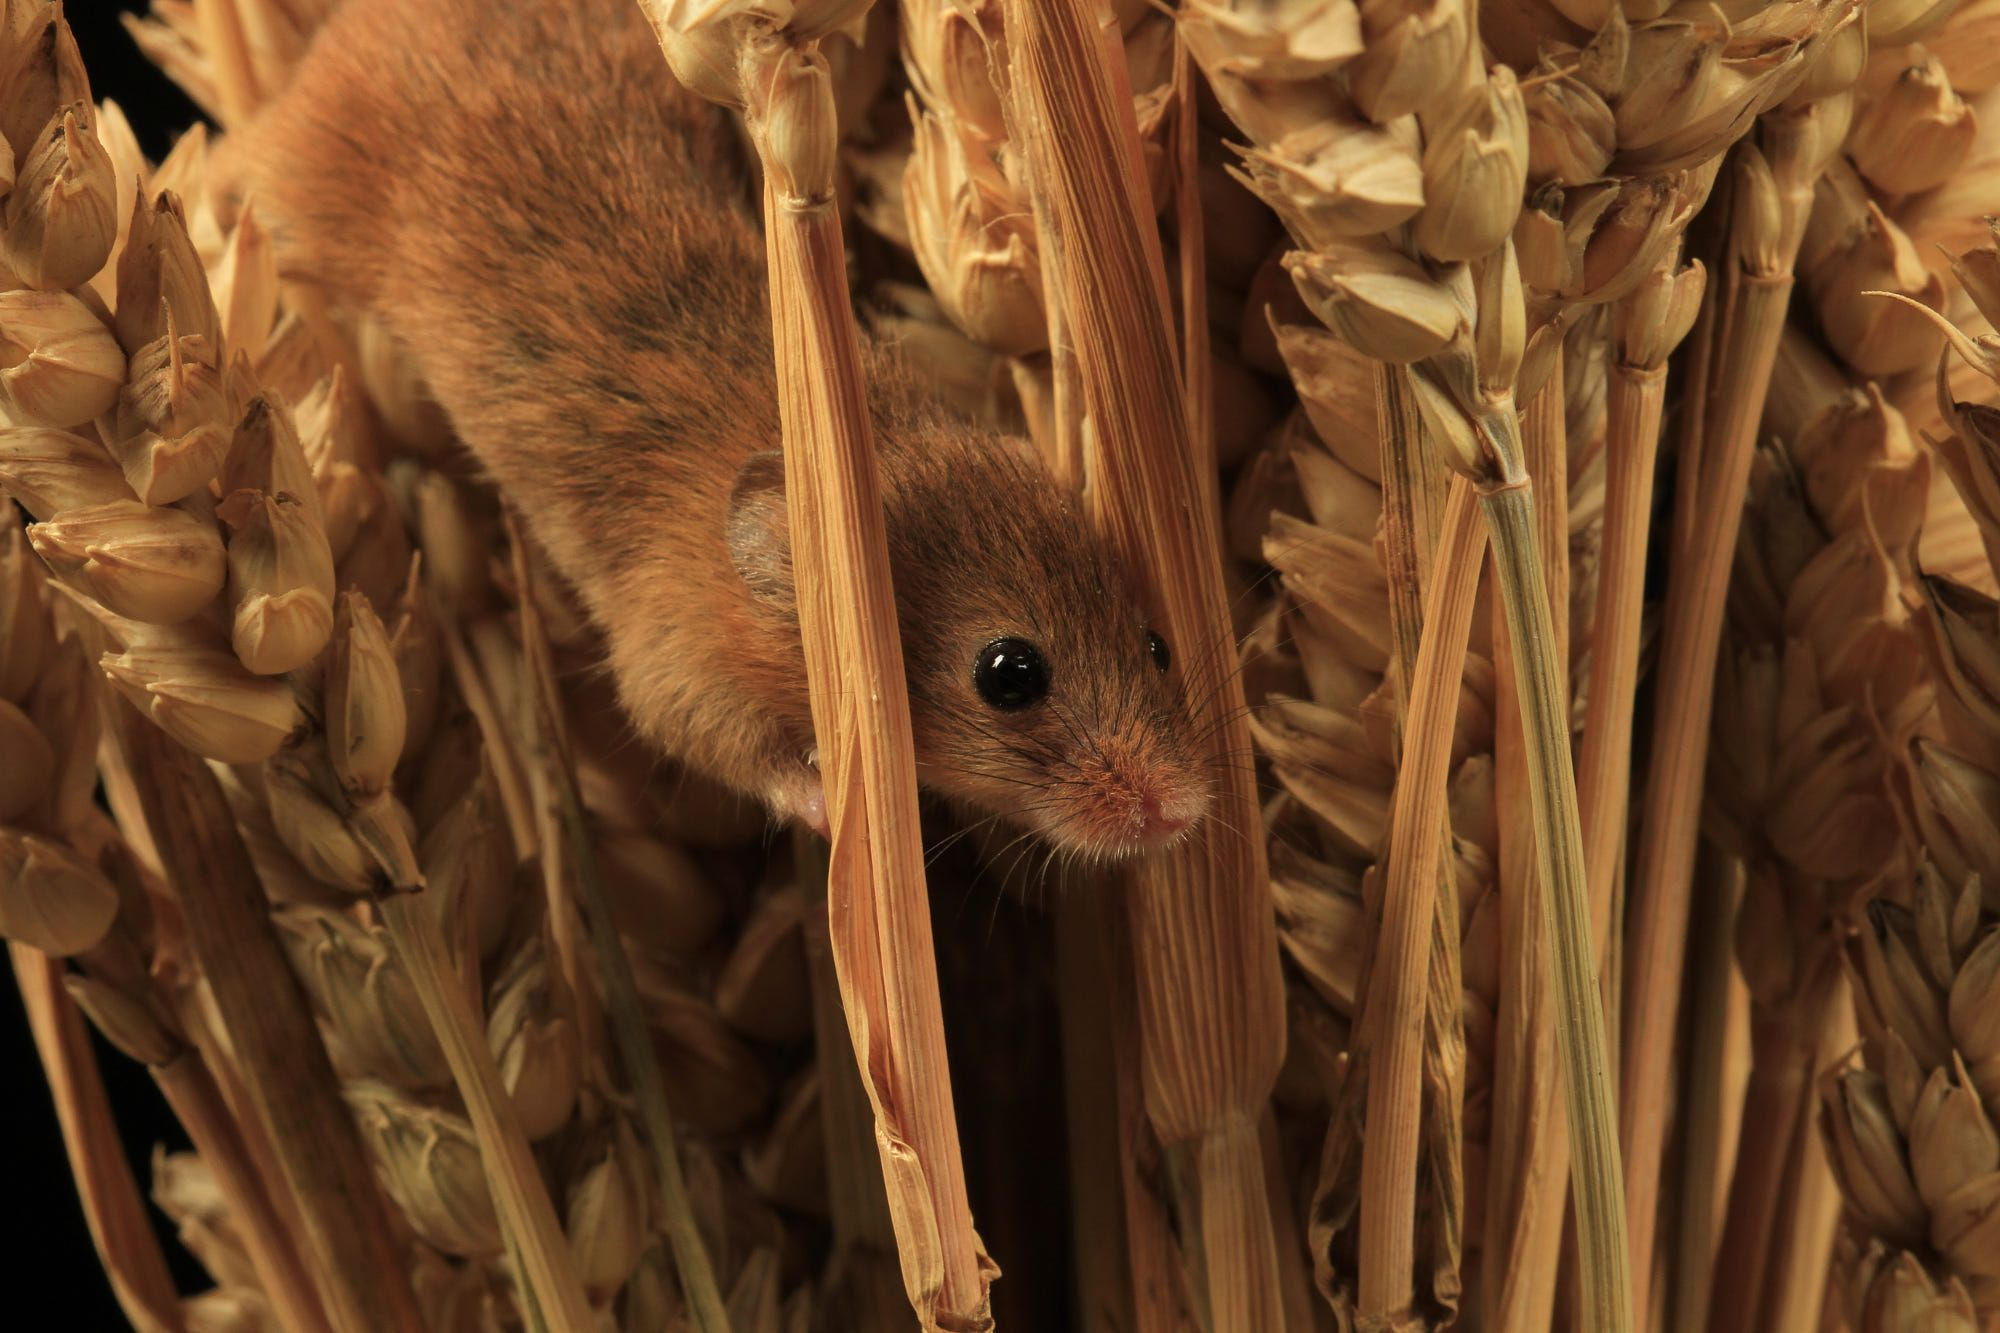 Baby field mice playing in corn Baby